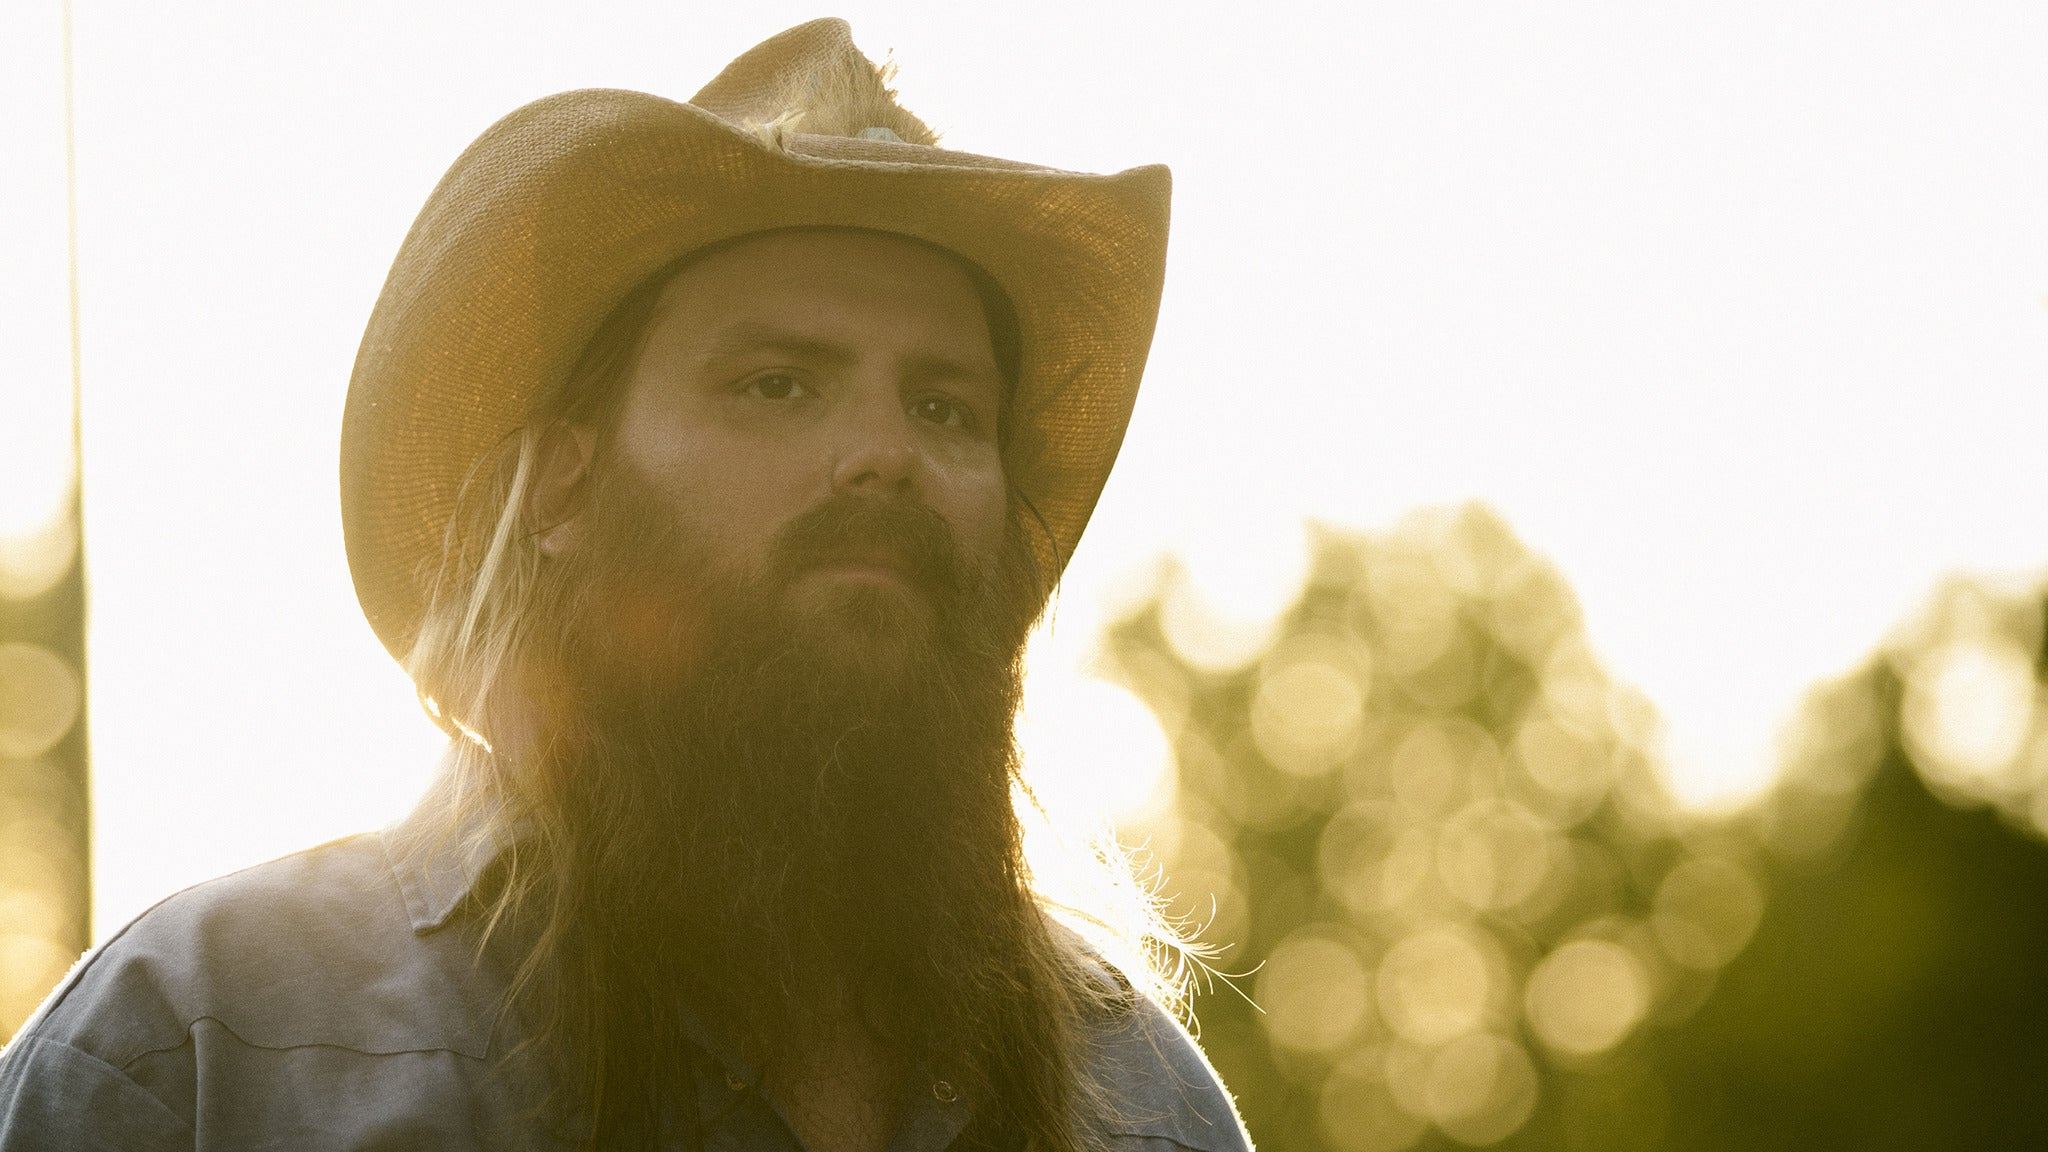 Chris Stapleton's All-American Road Show at Mizzou Arena